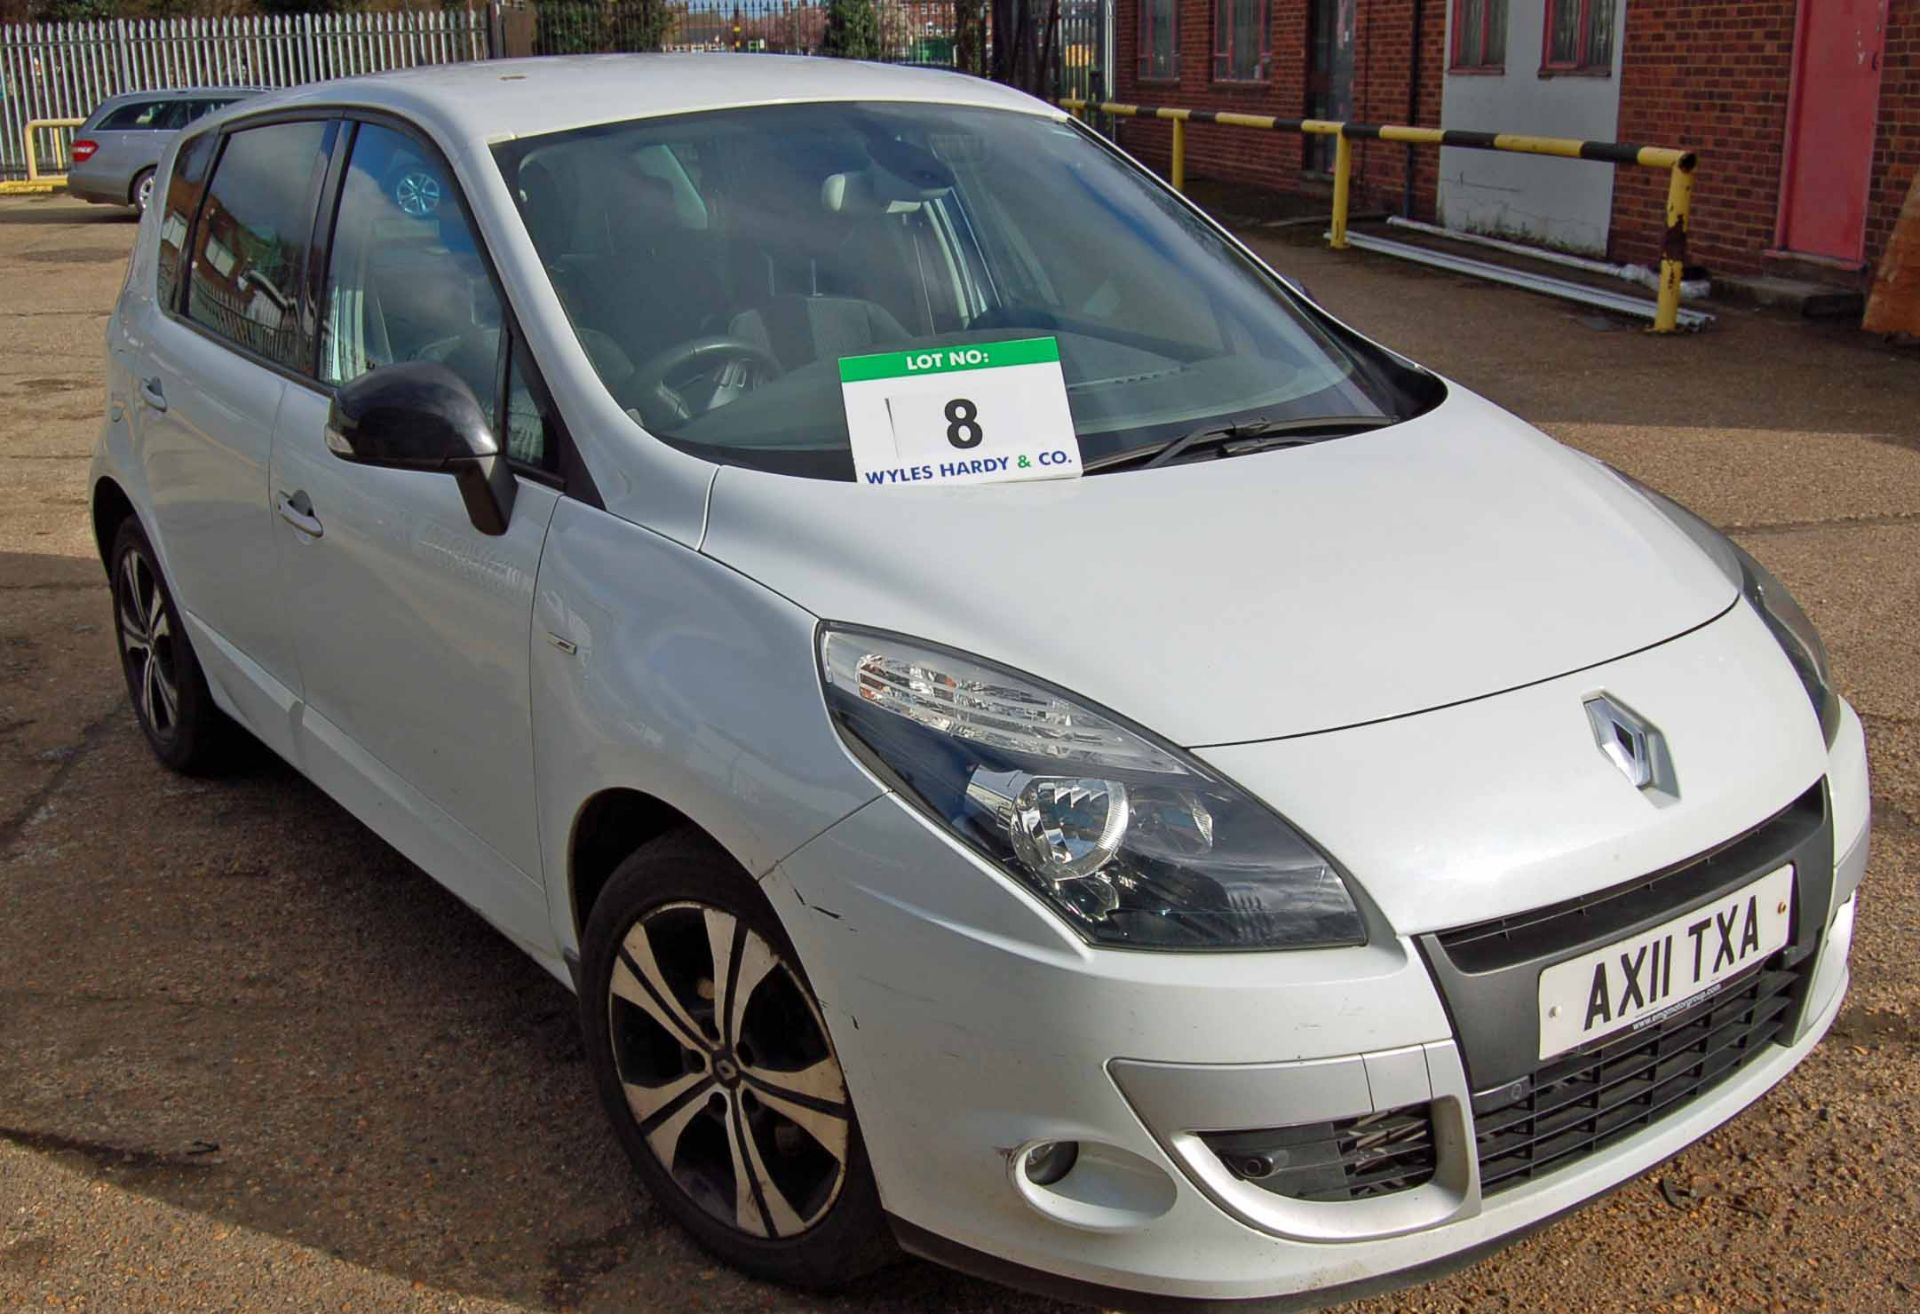 Lot 8 - A RENAULT Scenic 1.5 Dynamiq TT dciSA 5-Door, Automatic, Diesel, Hatchback MPV, Registration No.